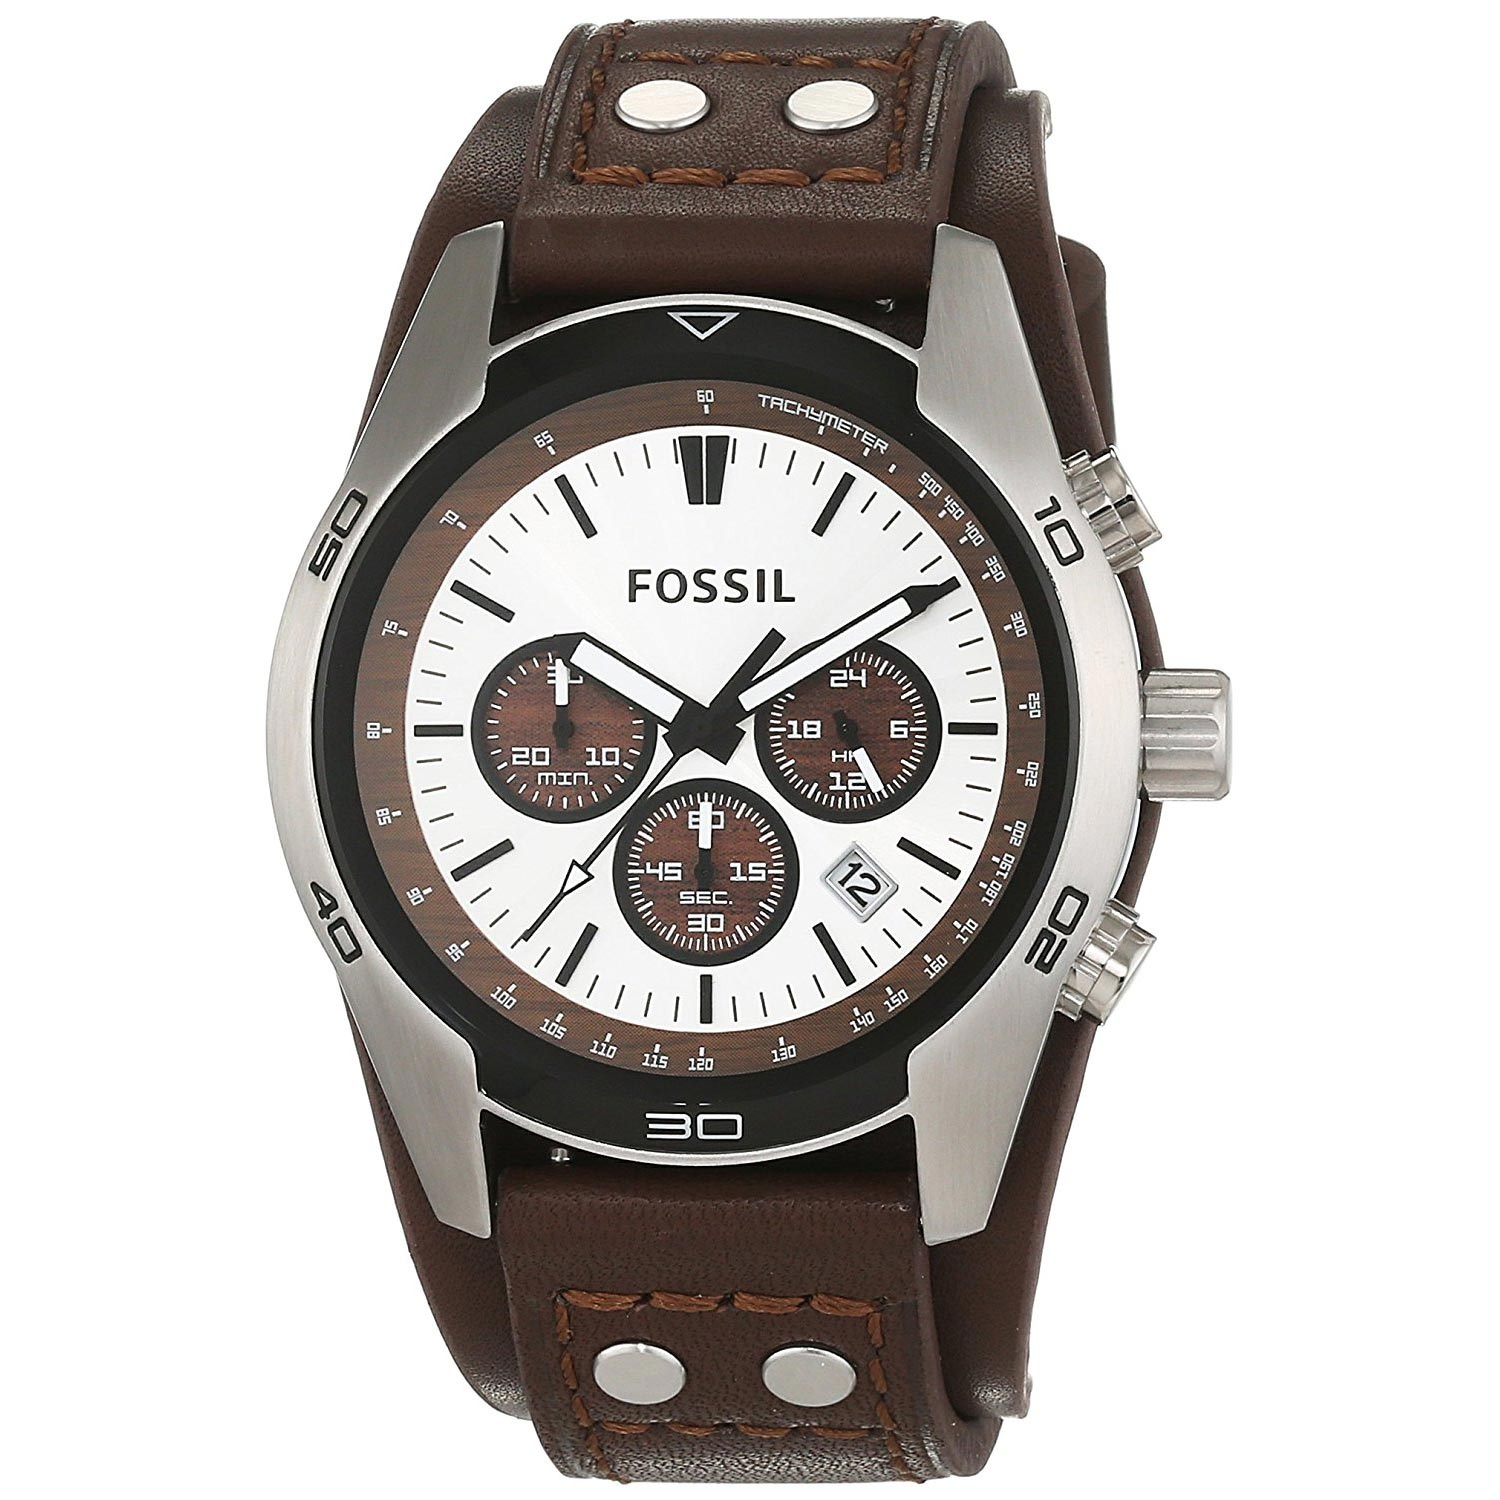 fossil herrenuhr ch2565 braun weisser herrenchronograph mit lederarmband herrenuhren. Black Bedroom Furniture Sets. Home Design Ideas